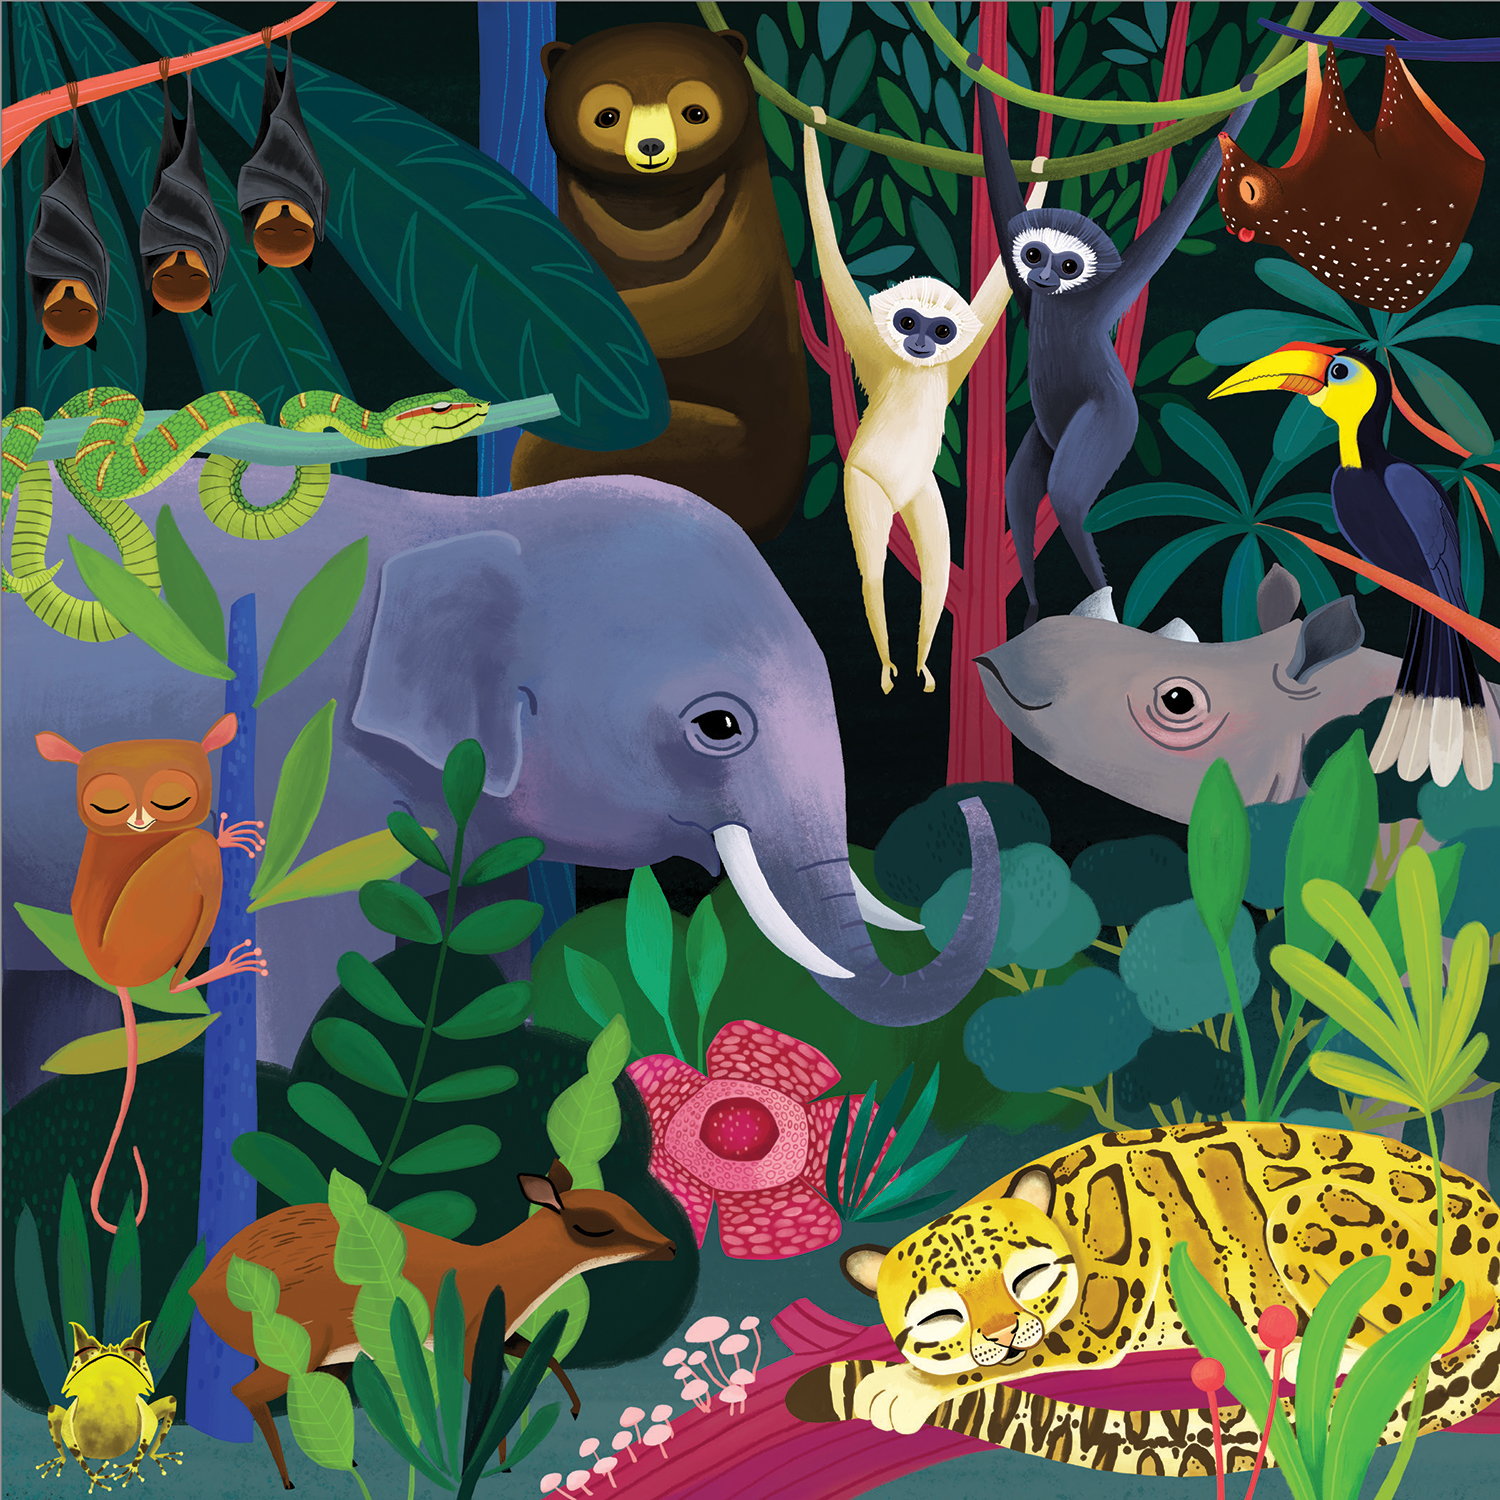 Glow in the Dark Jungle Jigsaw Puzzle, 500 pieces